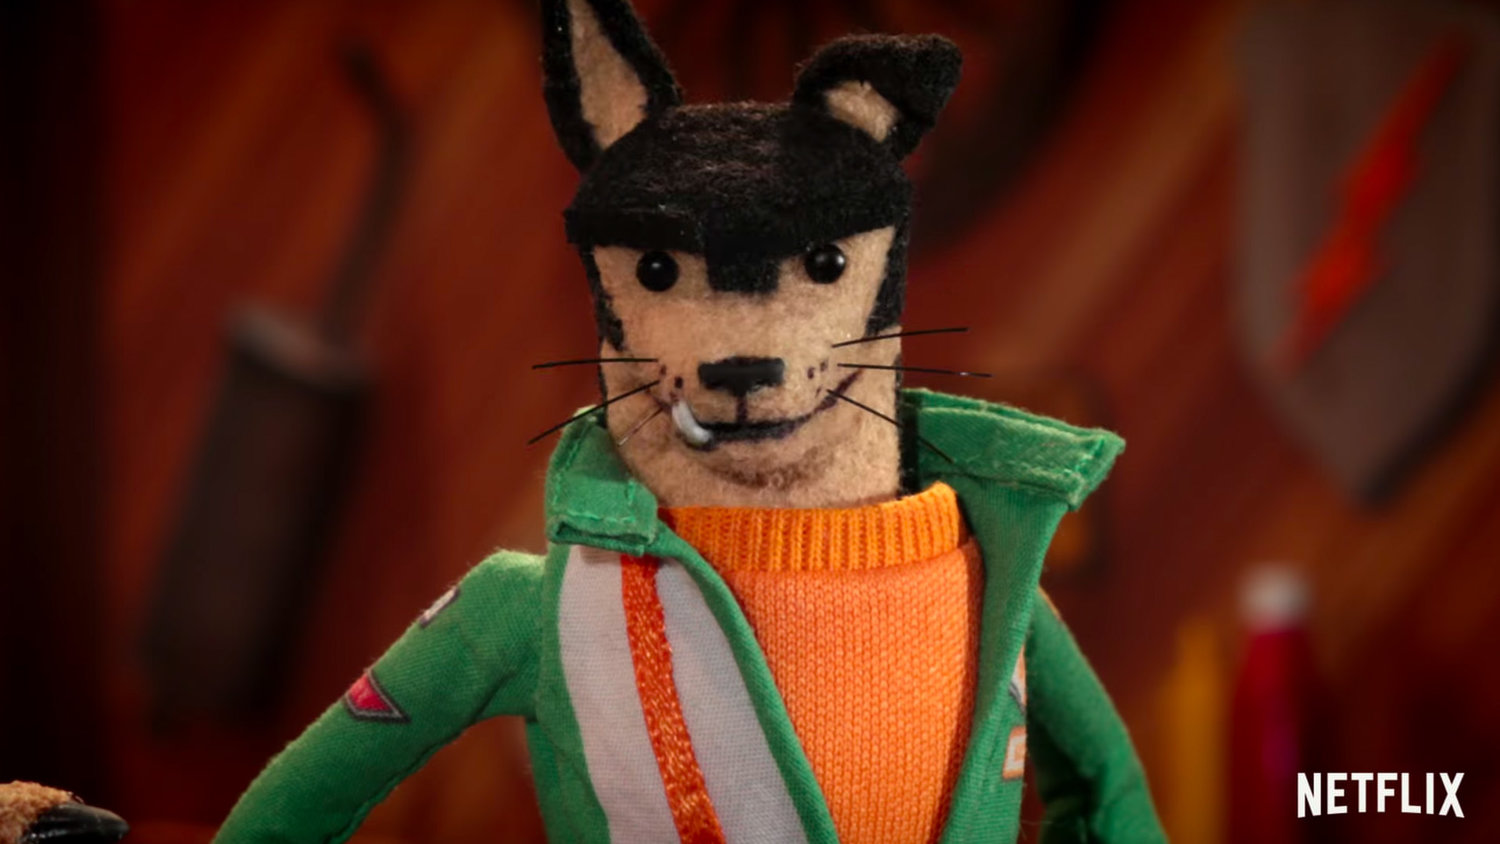 Netflix's BUDDY THUNDERSTRUCK Looks Like a Stop-Motion TALLADEGA NIGHTS Mixed with THE FANTASTIC MR. FOX